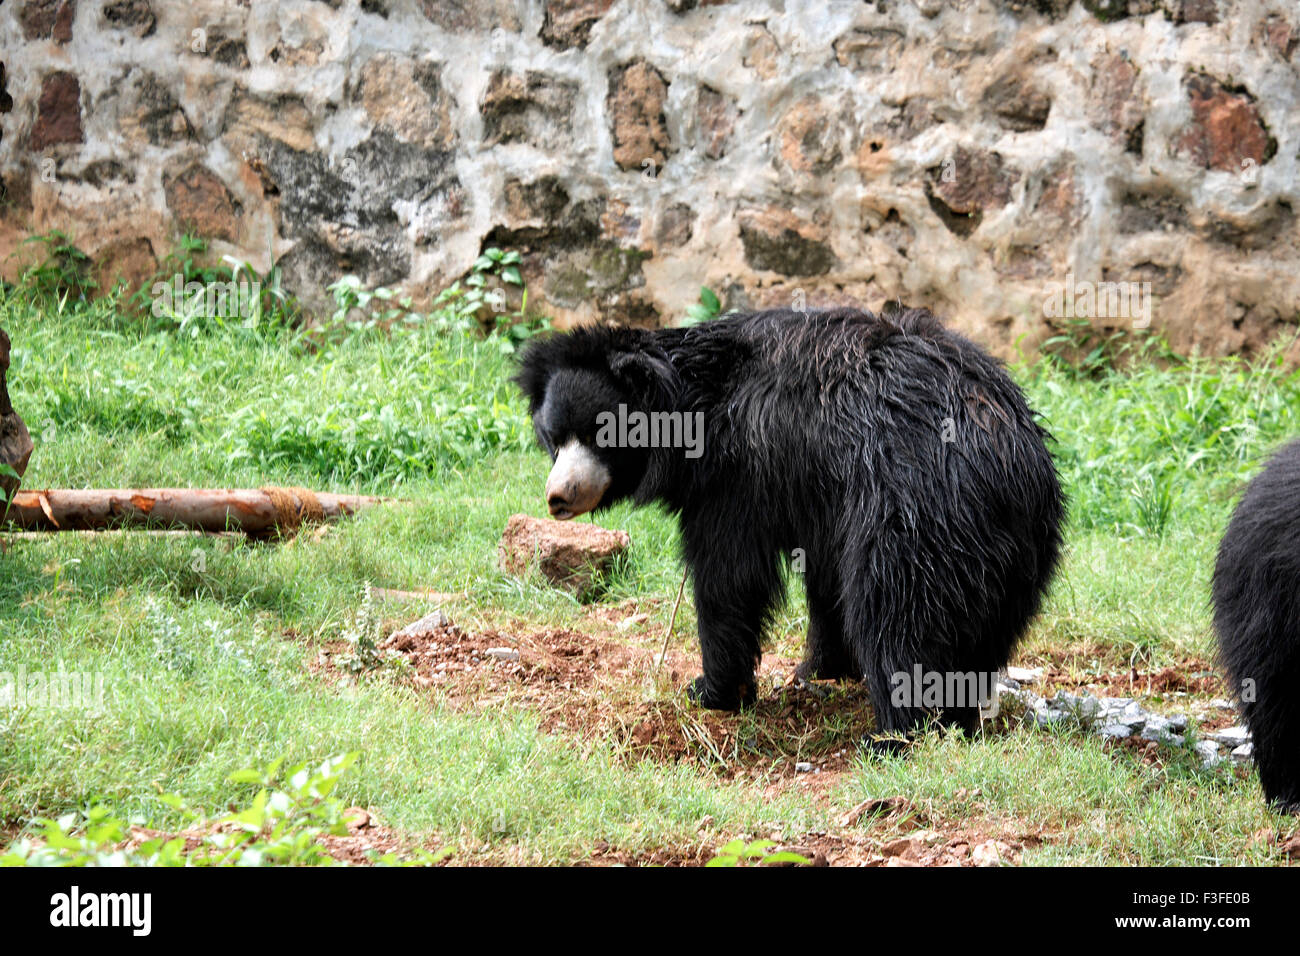 Asiatic black bear - Stock Image